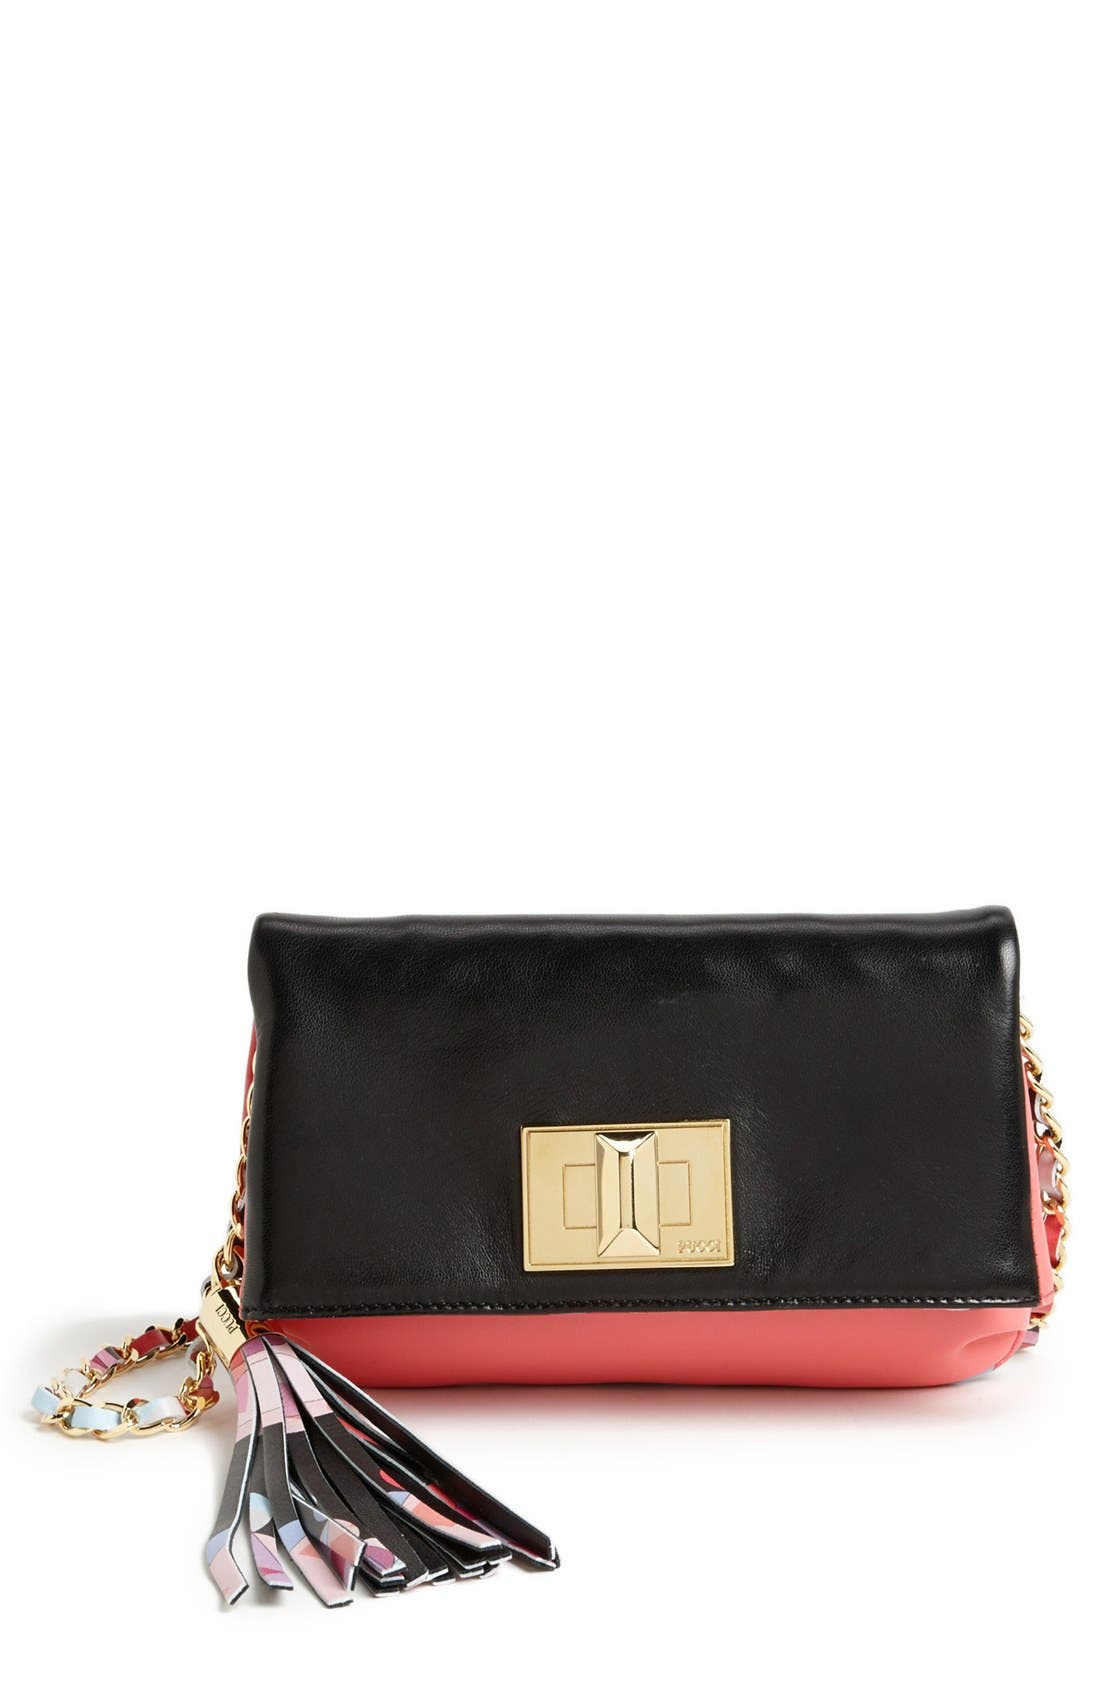 Main Image - Emilio Pucci 'Mini' Colorblock Lambskin Leather Crossbody Bag